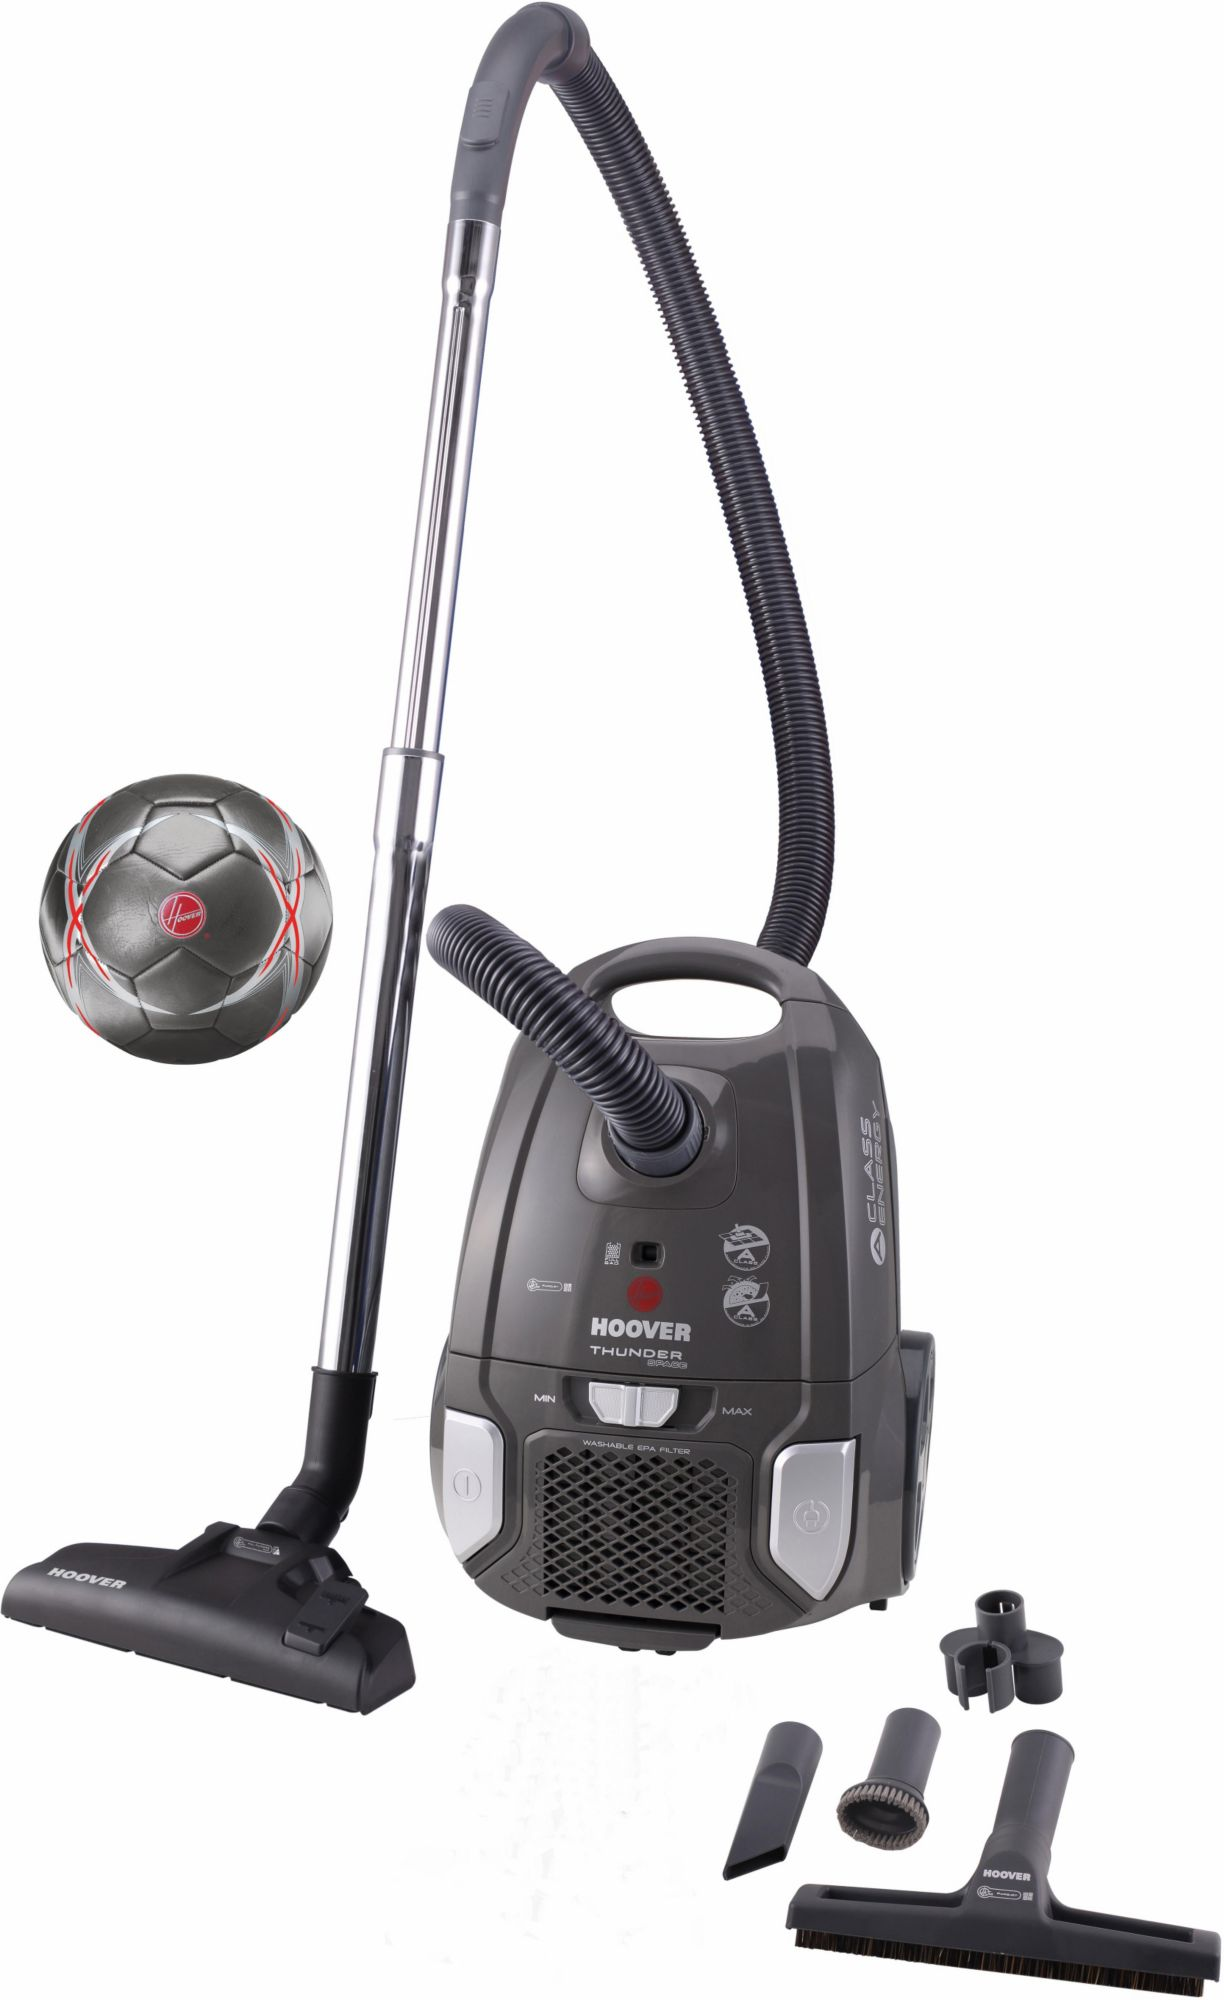 HOOVER Hoover Bodenstaubsauger Thunder Space TS70_TS2S, Energieklasse A, schwarz / silber